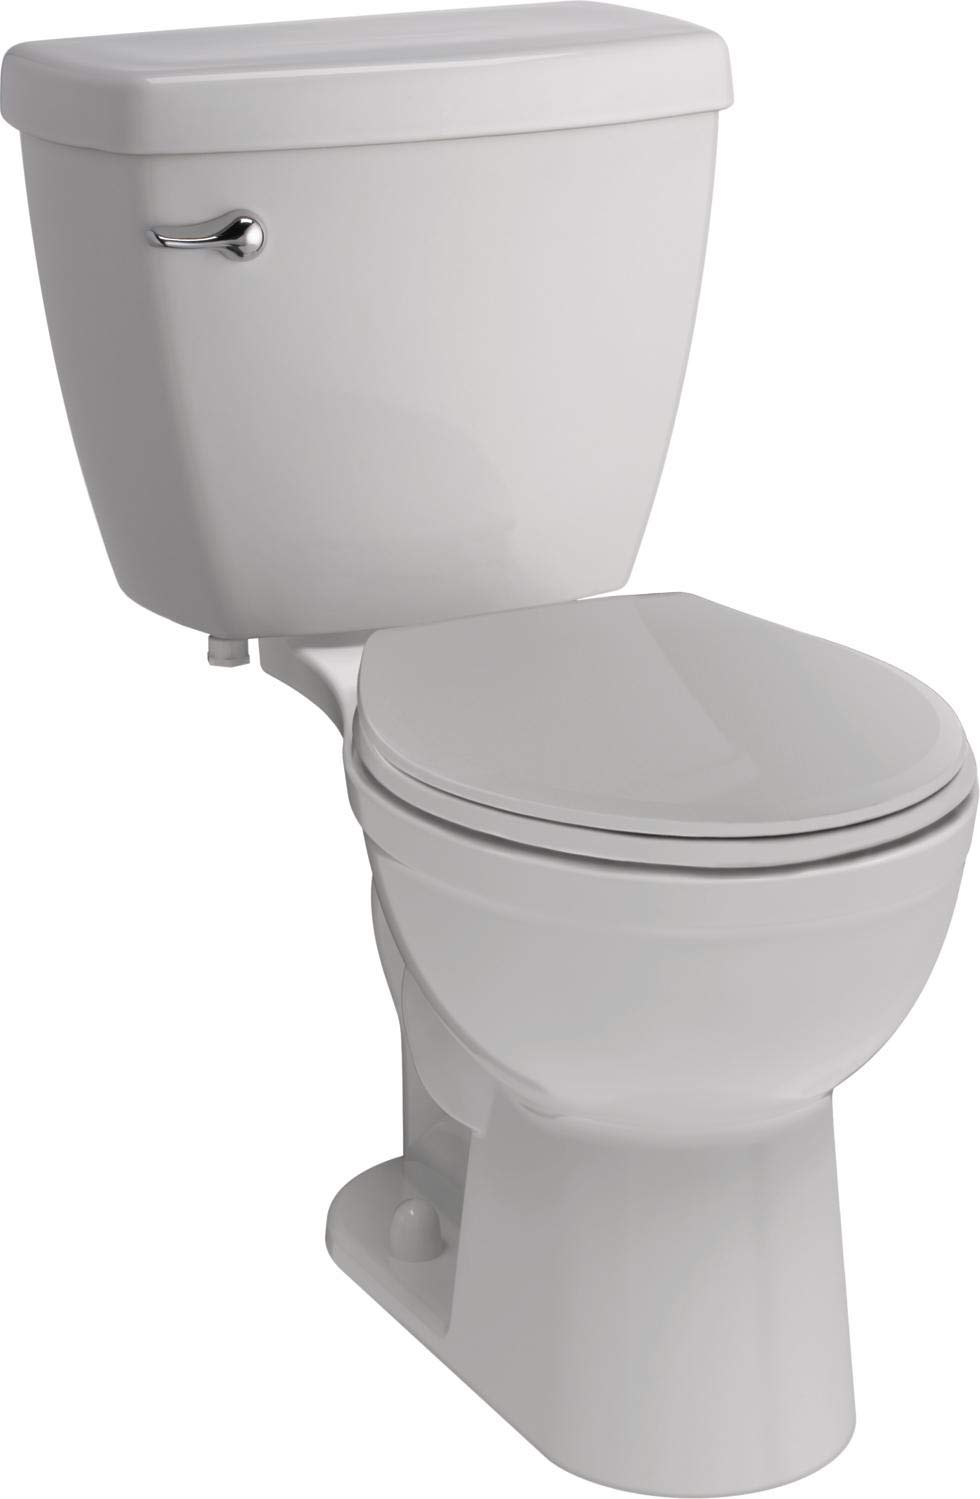 Delta Faucet Haywood White Round-Front Toilet with Slow-Close Toilet Seat, Comfort Chair Height, 1.28 GPF, White